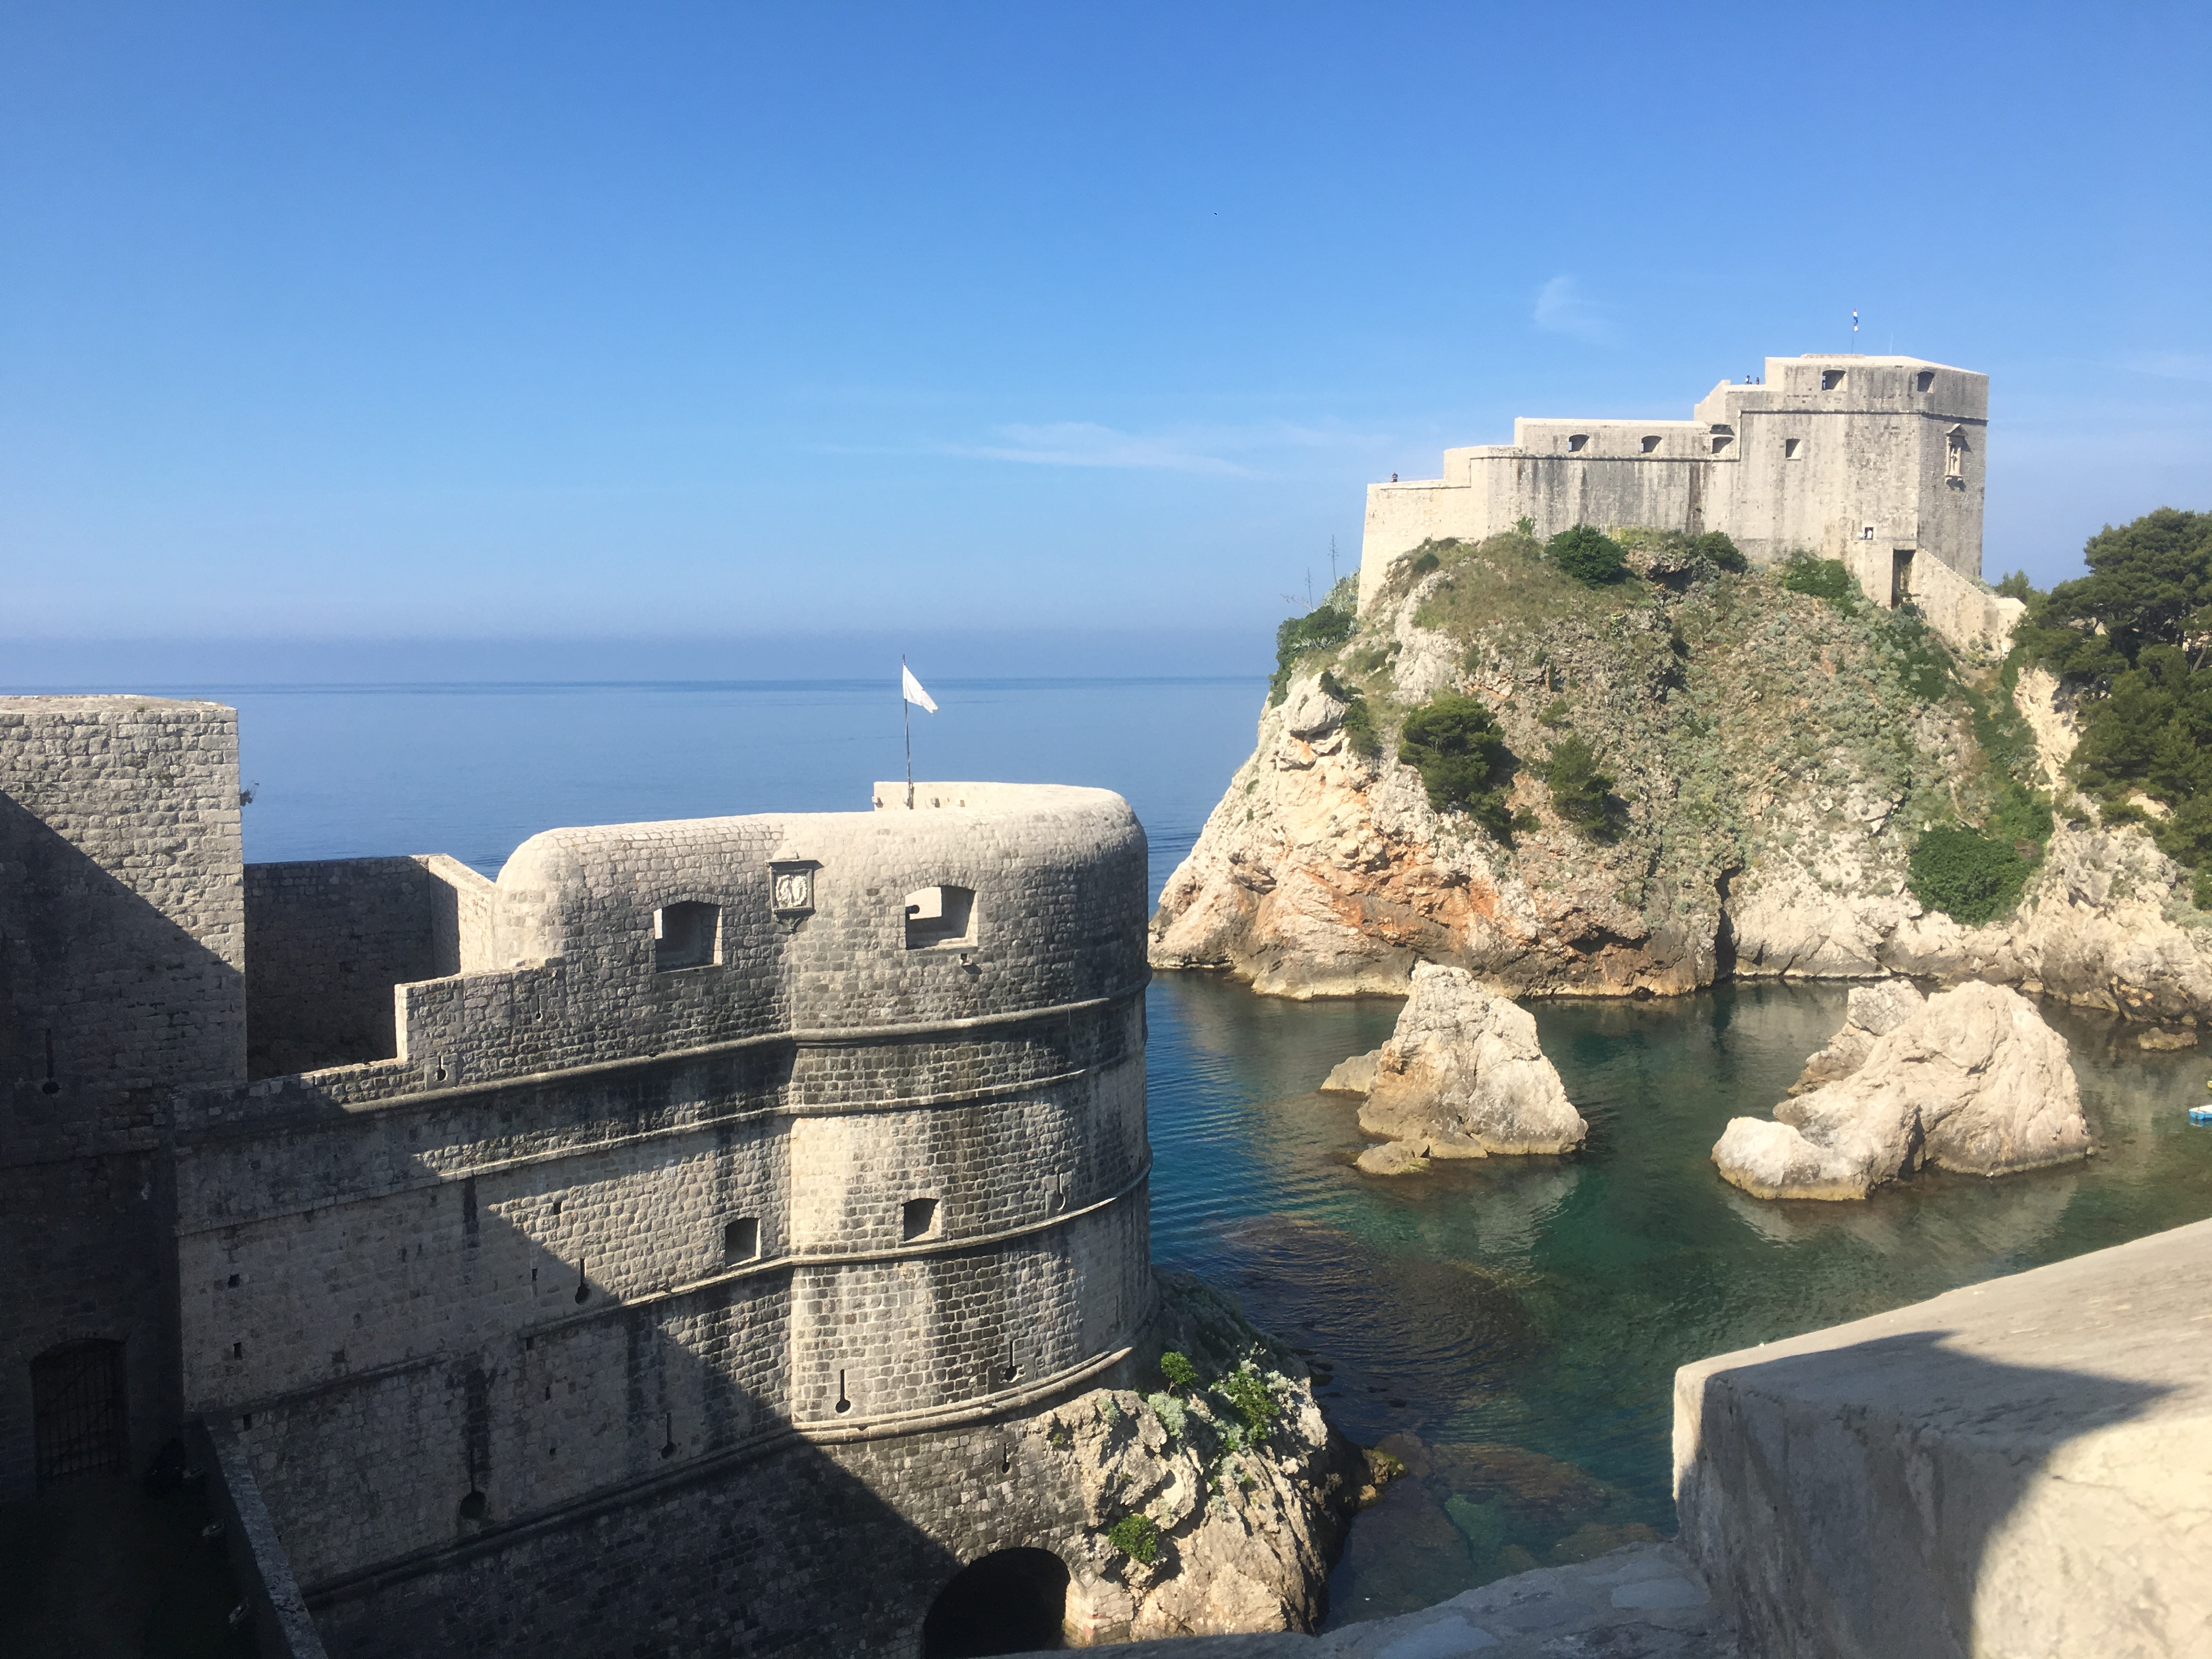 Guide To Game of Thrones Filming Locations in Dubrovnik, Croatia